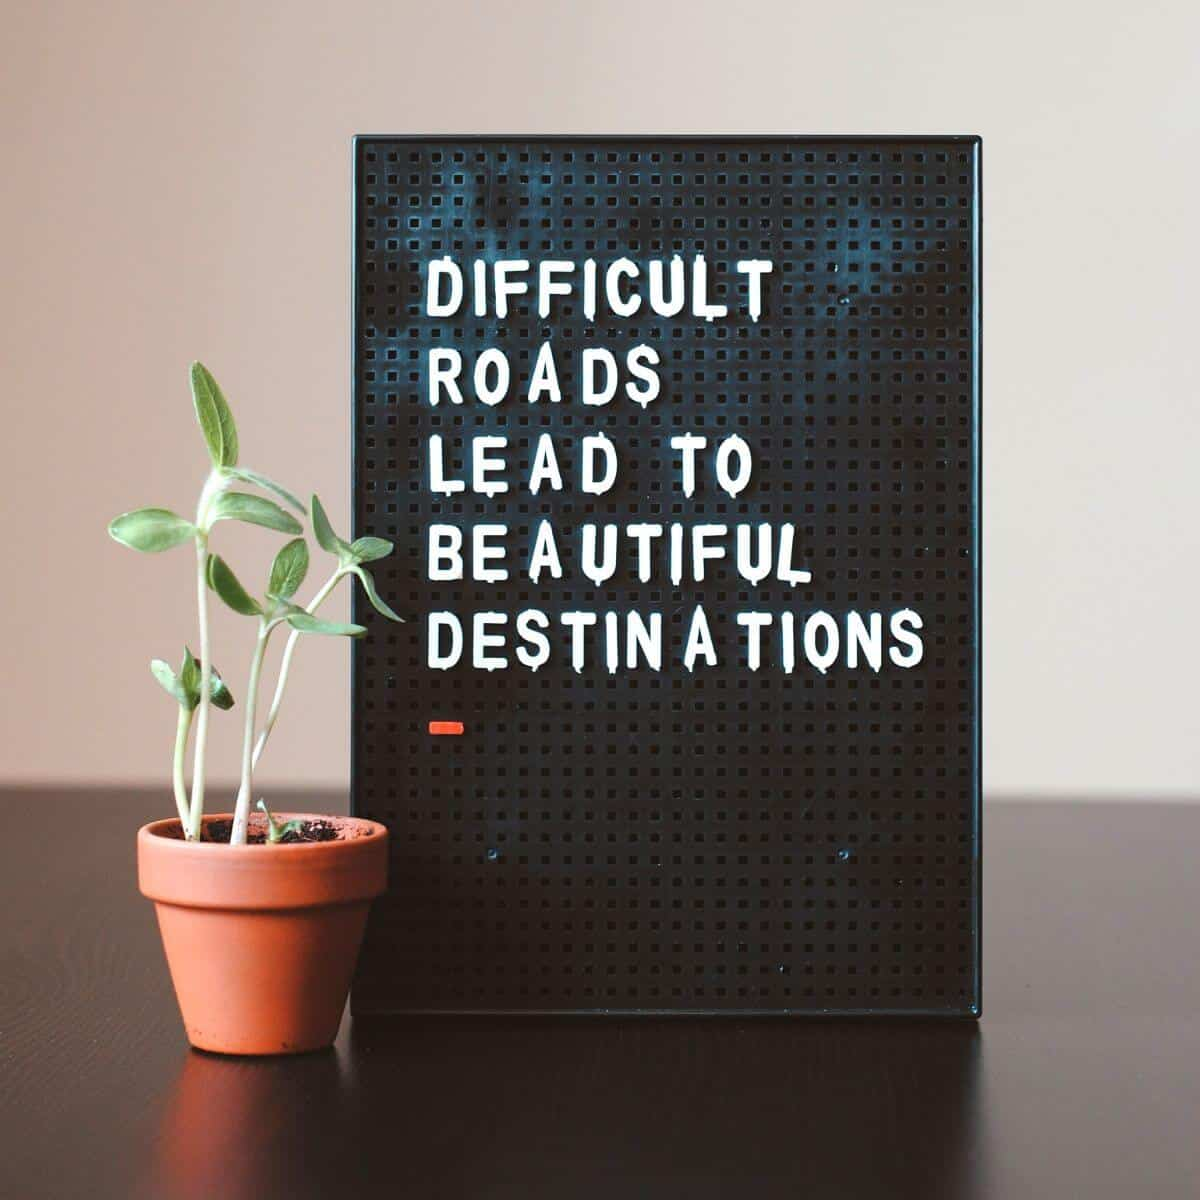 A plant and a sign with a quote on a table.